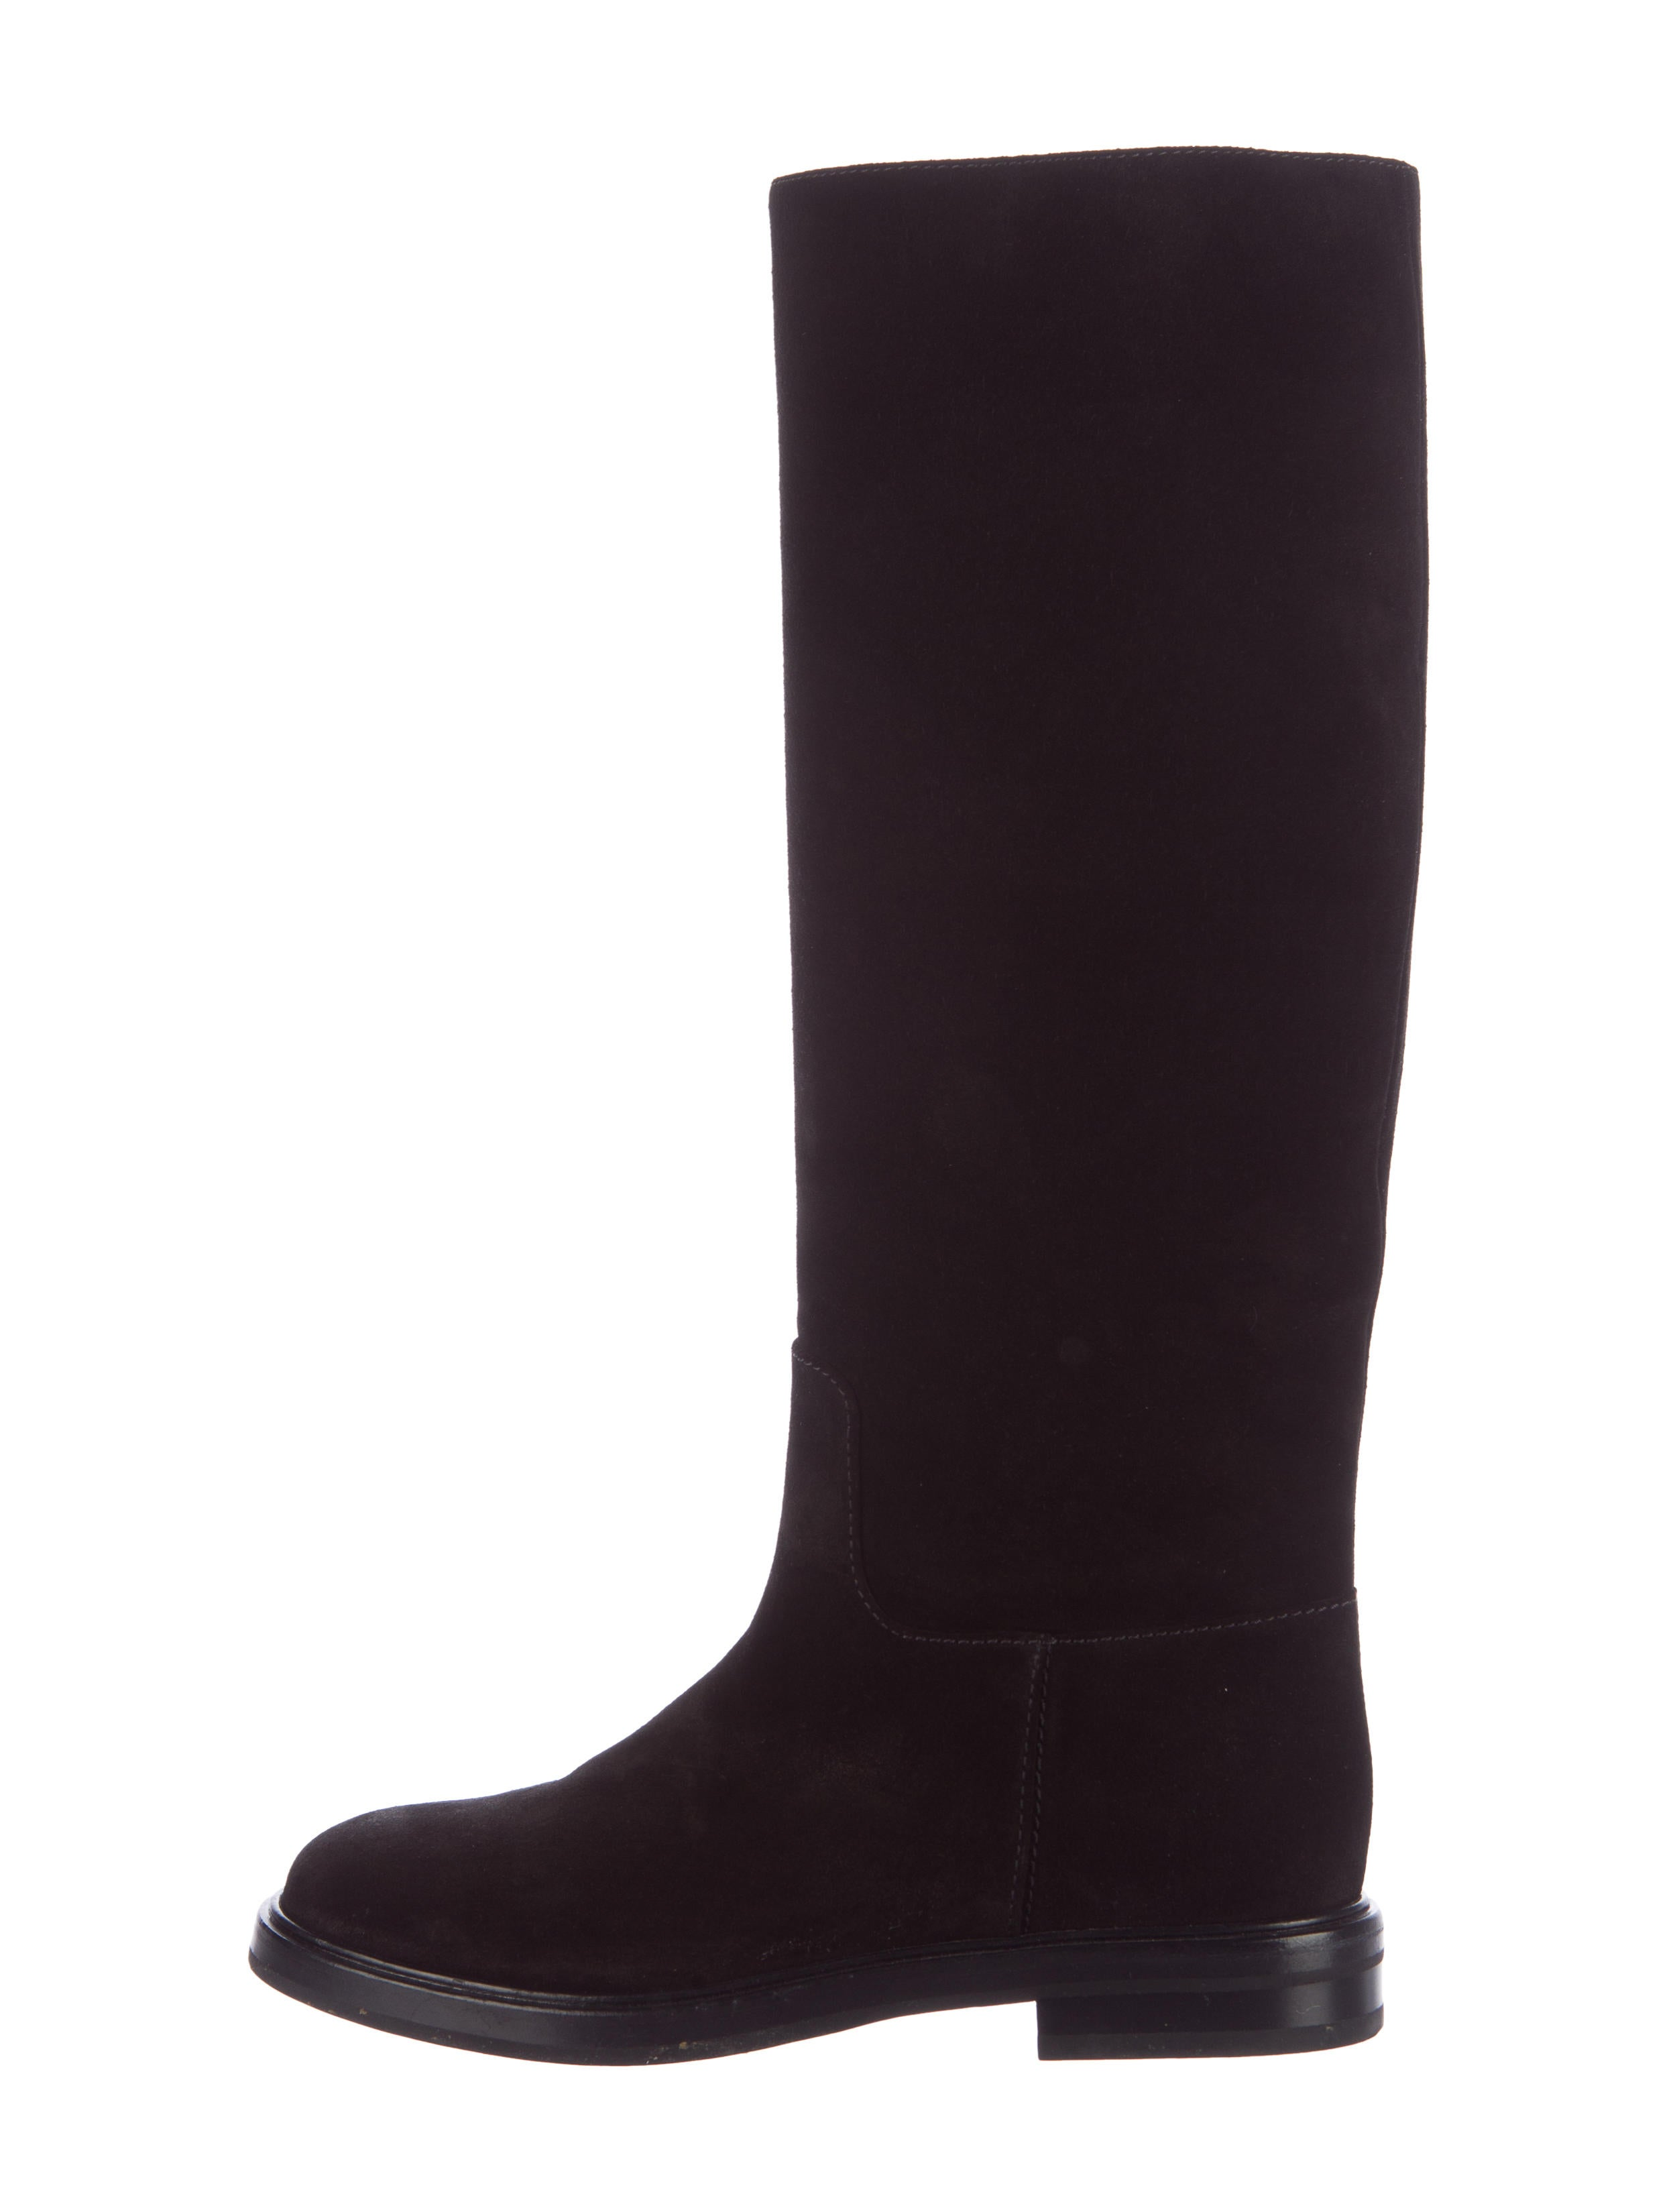 casadei suede toe knee high boots shoes cei22837